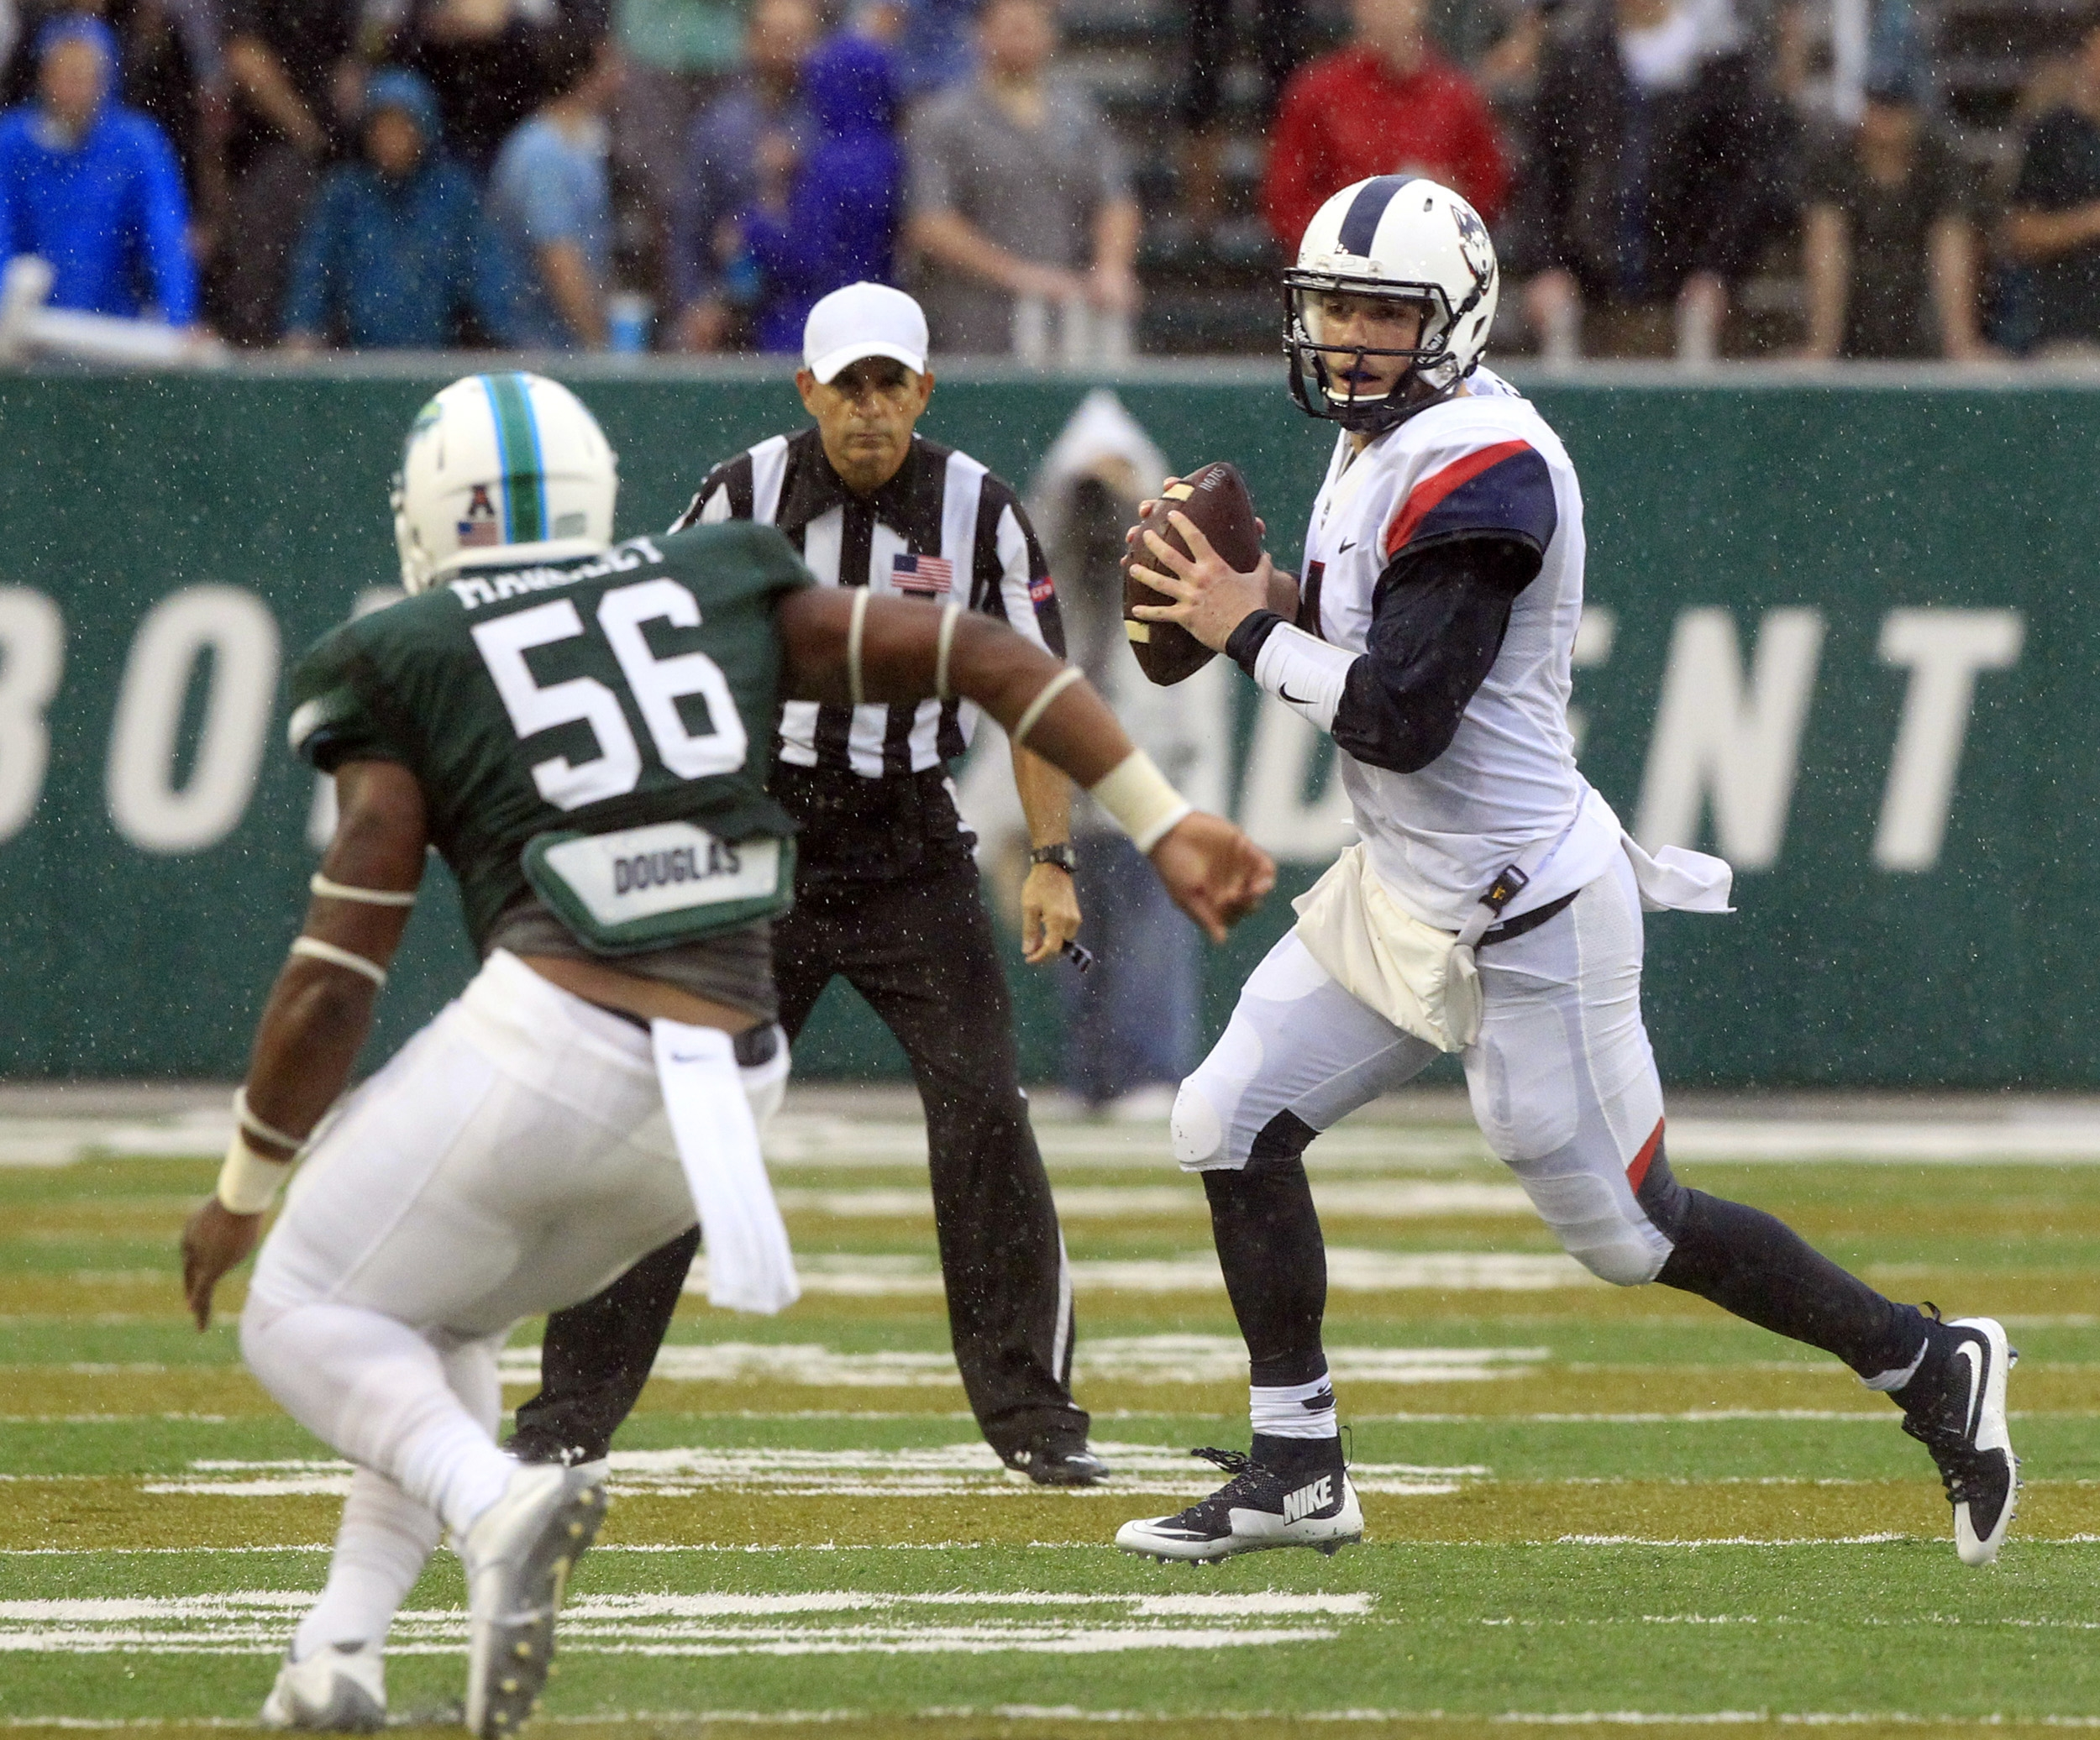 Connecticut quarterback Bryant Shirreffs (4) scrambles out of the pocket as Tulane linebacker Rae Juan Marbley (56) closes in during an NCAA college football game at Yulman Stadium in New Orleans, La. Saturday, Nov. 7, 2015. (A.J. Sisco/The Advocate via AP)